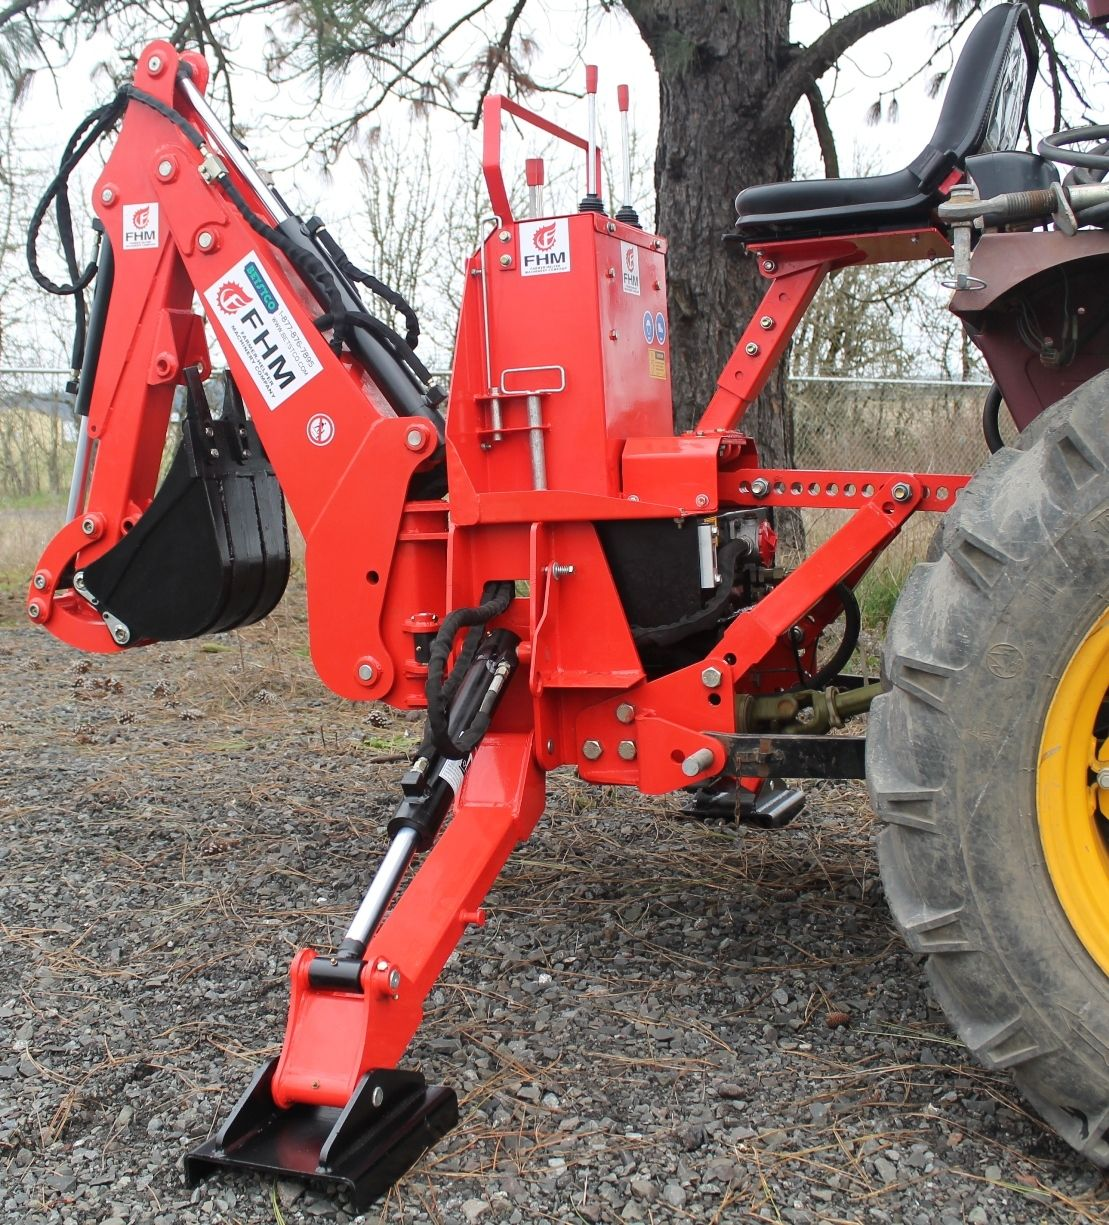 6' Dig Self Contained Tractor Backhoe FH-BH6 in 2019 | Stuff to buy